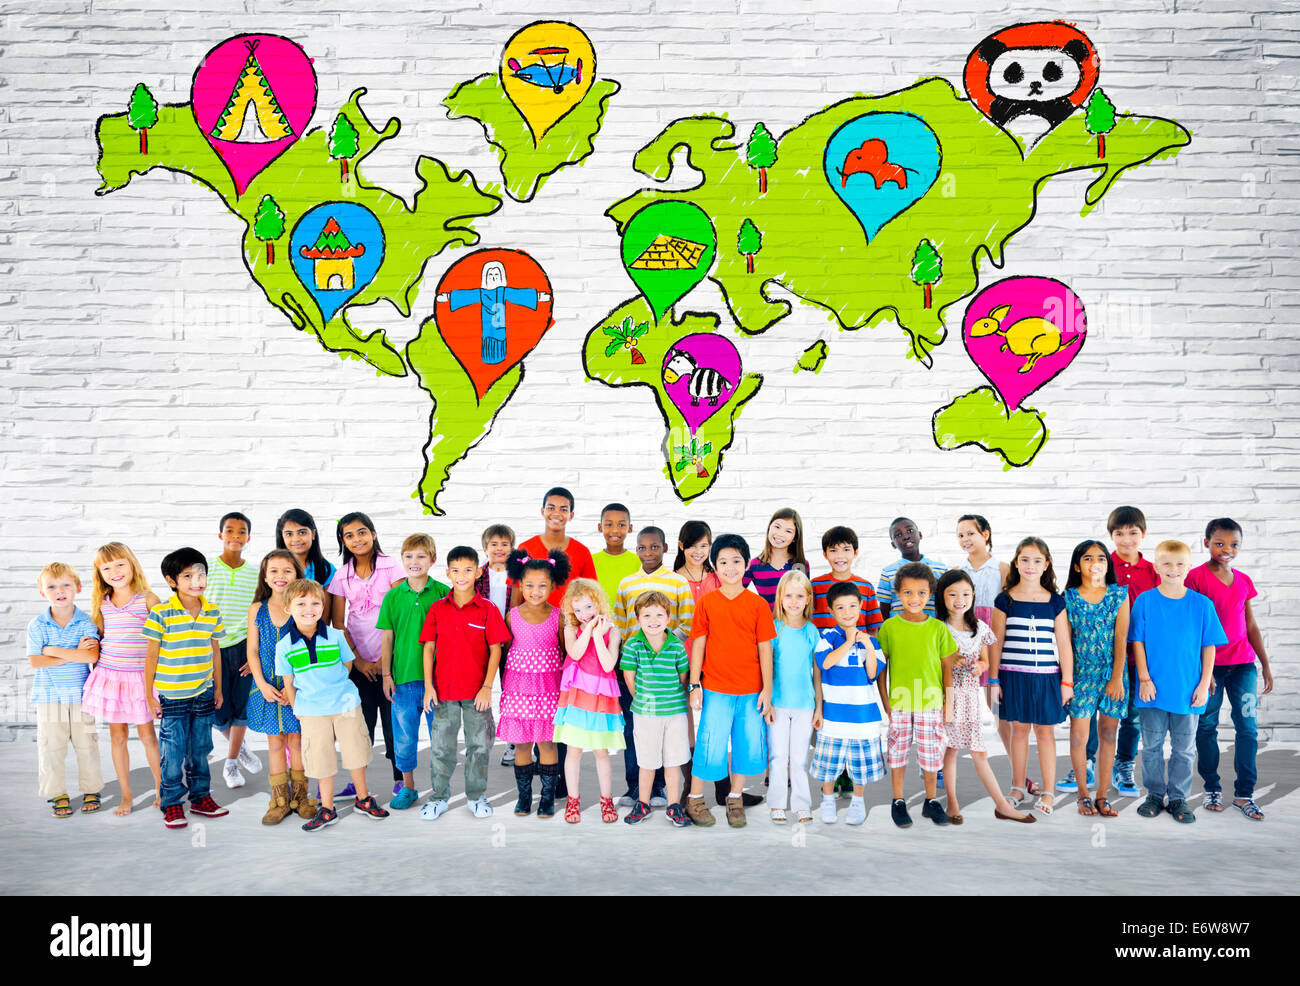 Group of elementary aged children standing in front of a wall of world cartography. - Stock Image